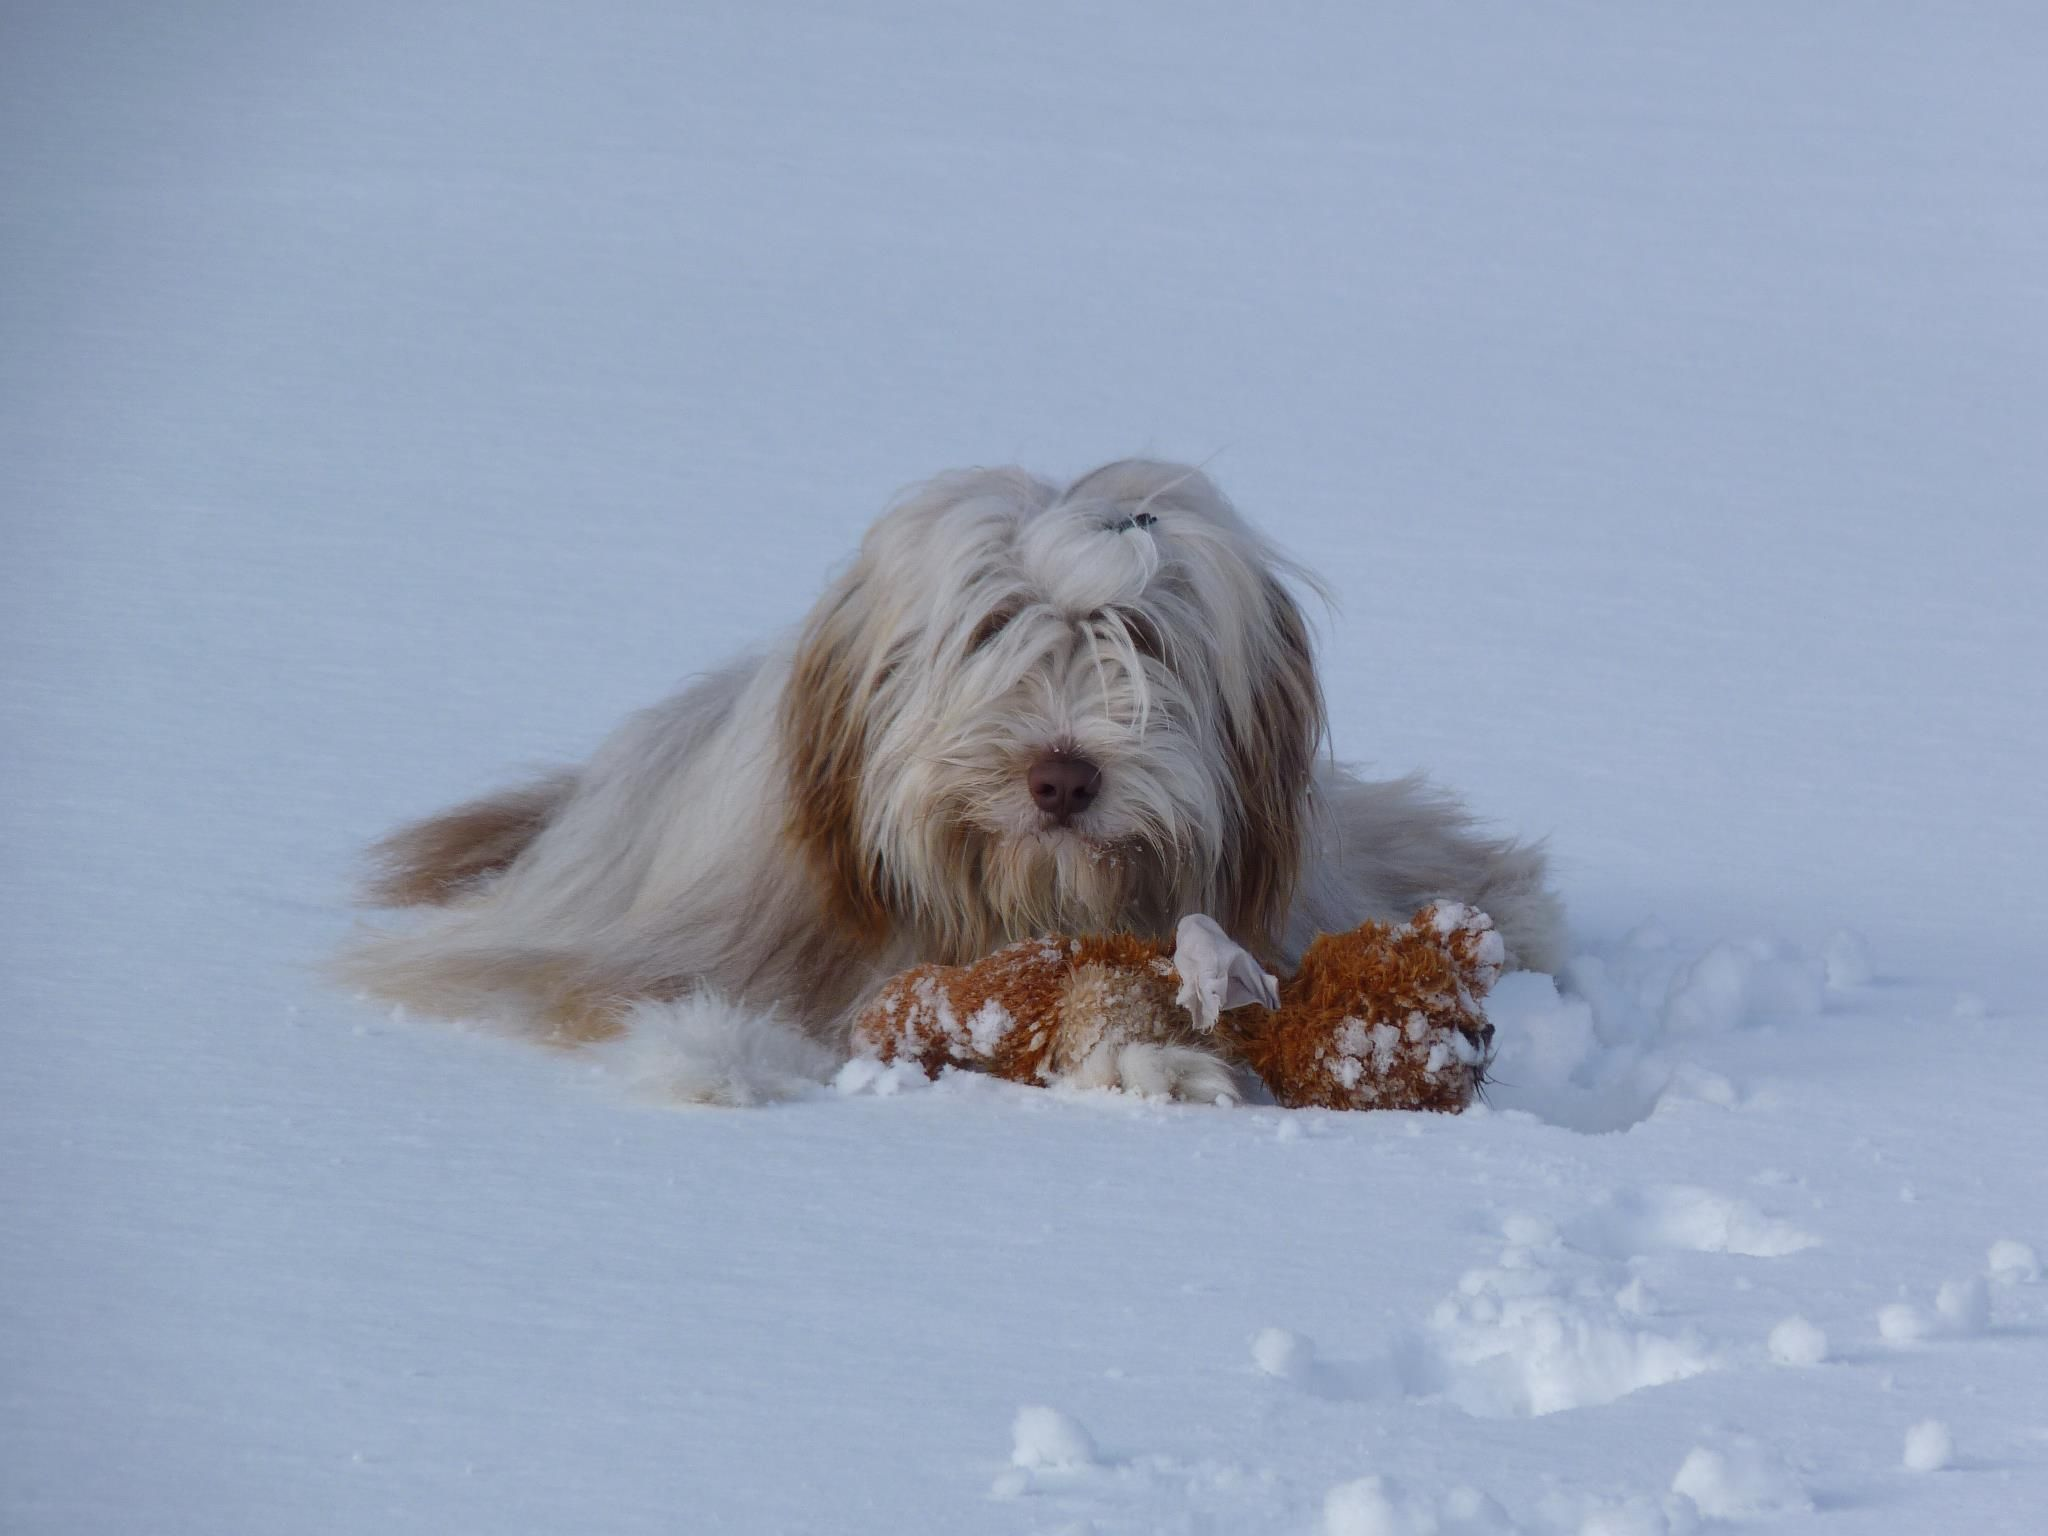 My pup Urho all grown up. Enjoying a teddy meal on the frozen lake.